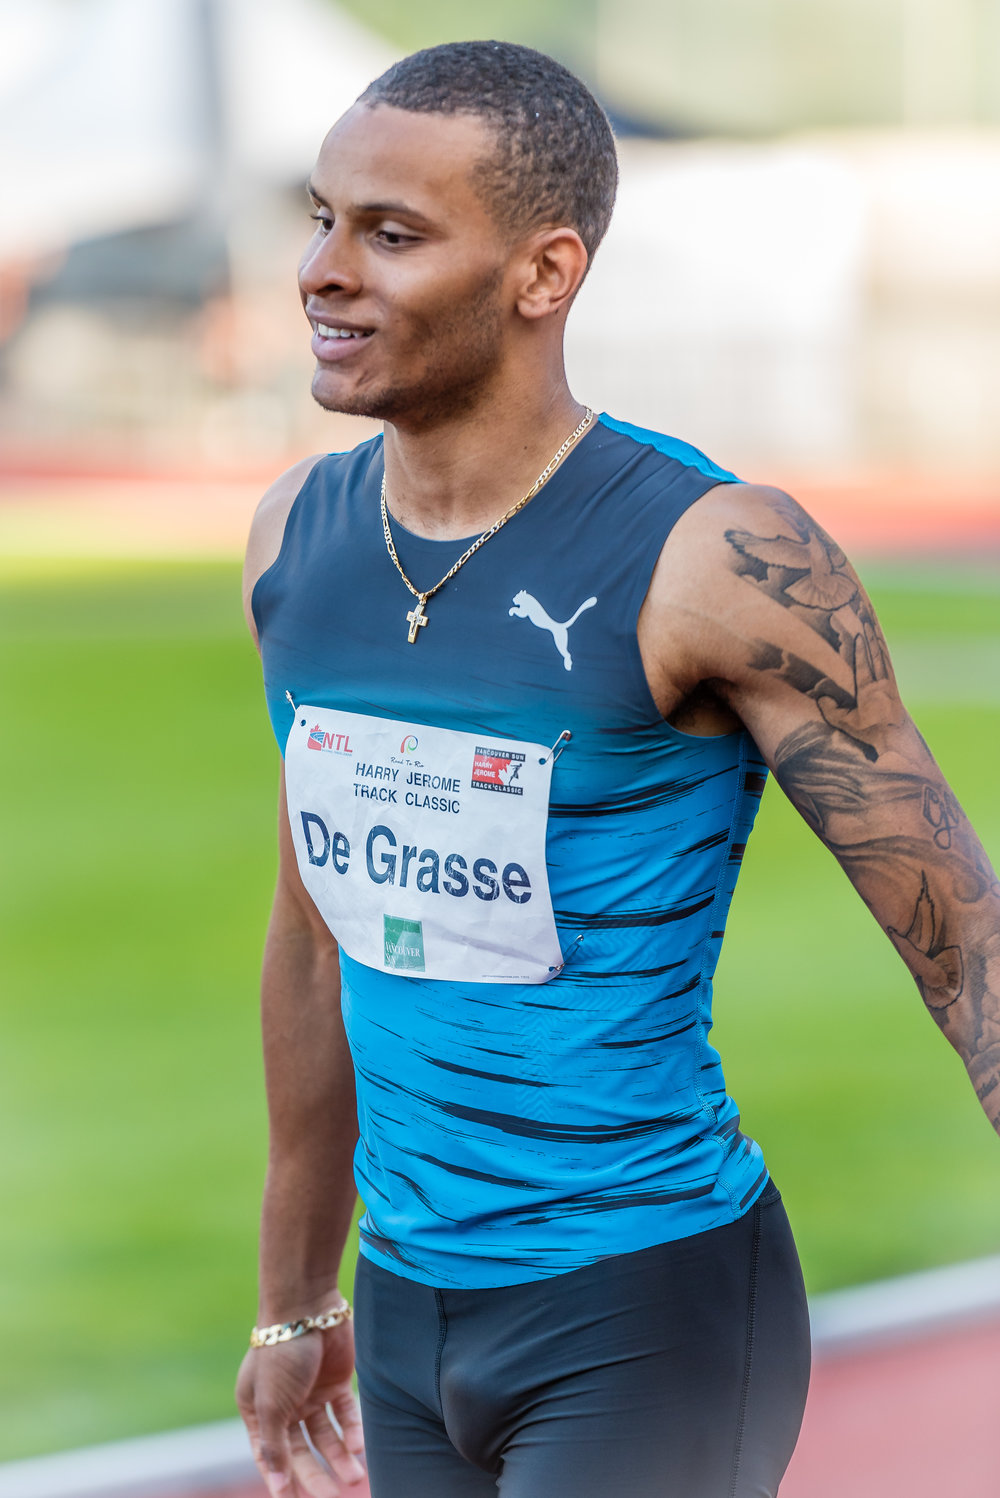 Andre De Grasse at Jerome Classic last year                                            photo credit: Brian Cliff